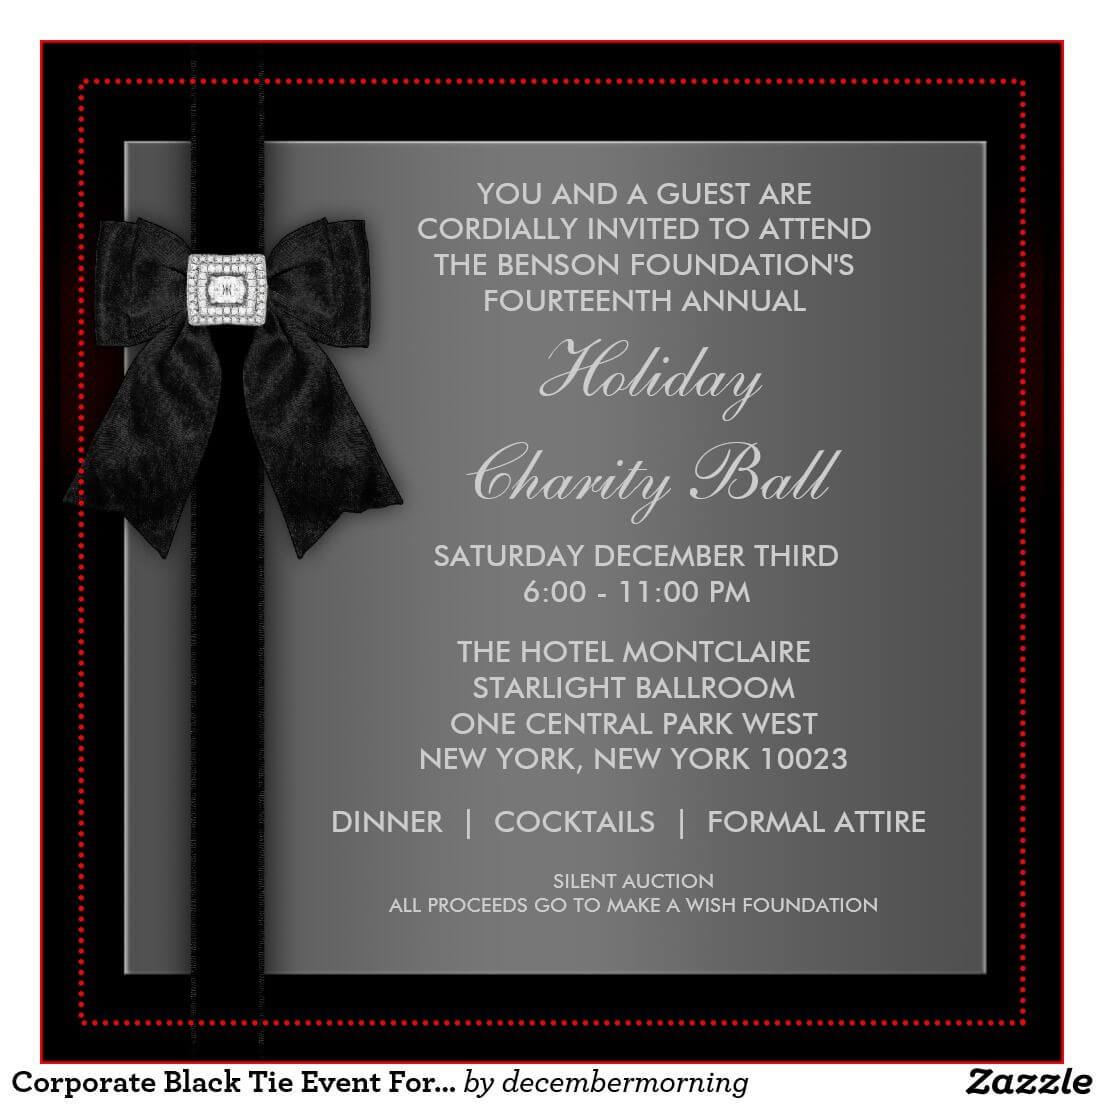 Formal Event Invitation Card Sample - Google Search Throughout Event Invitation Card Template